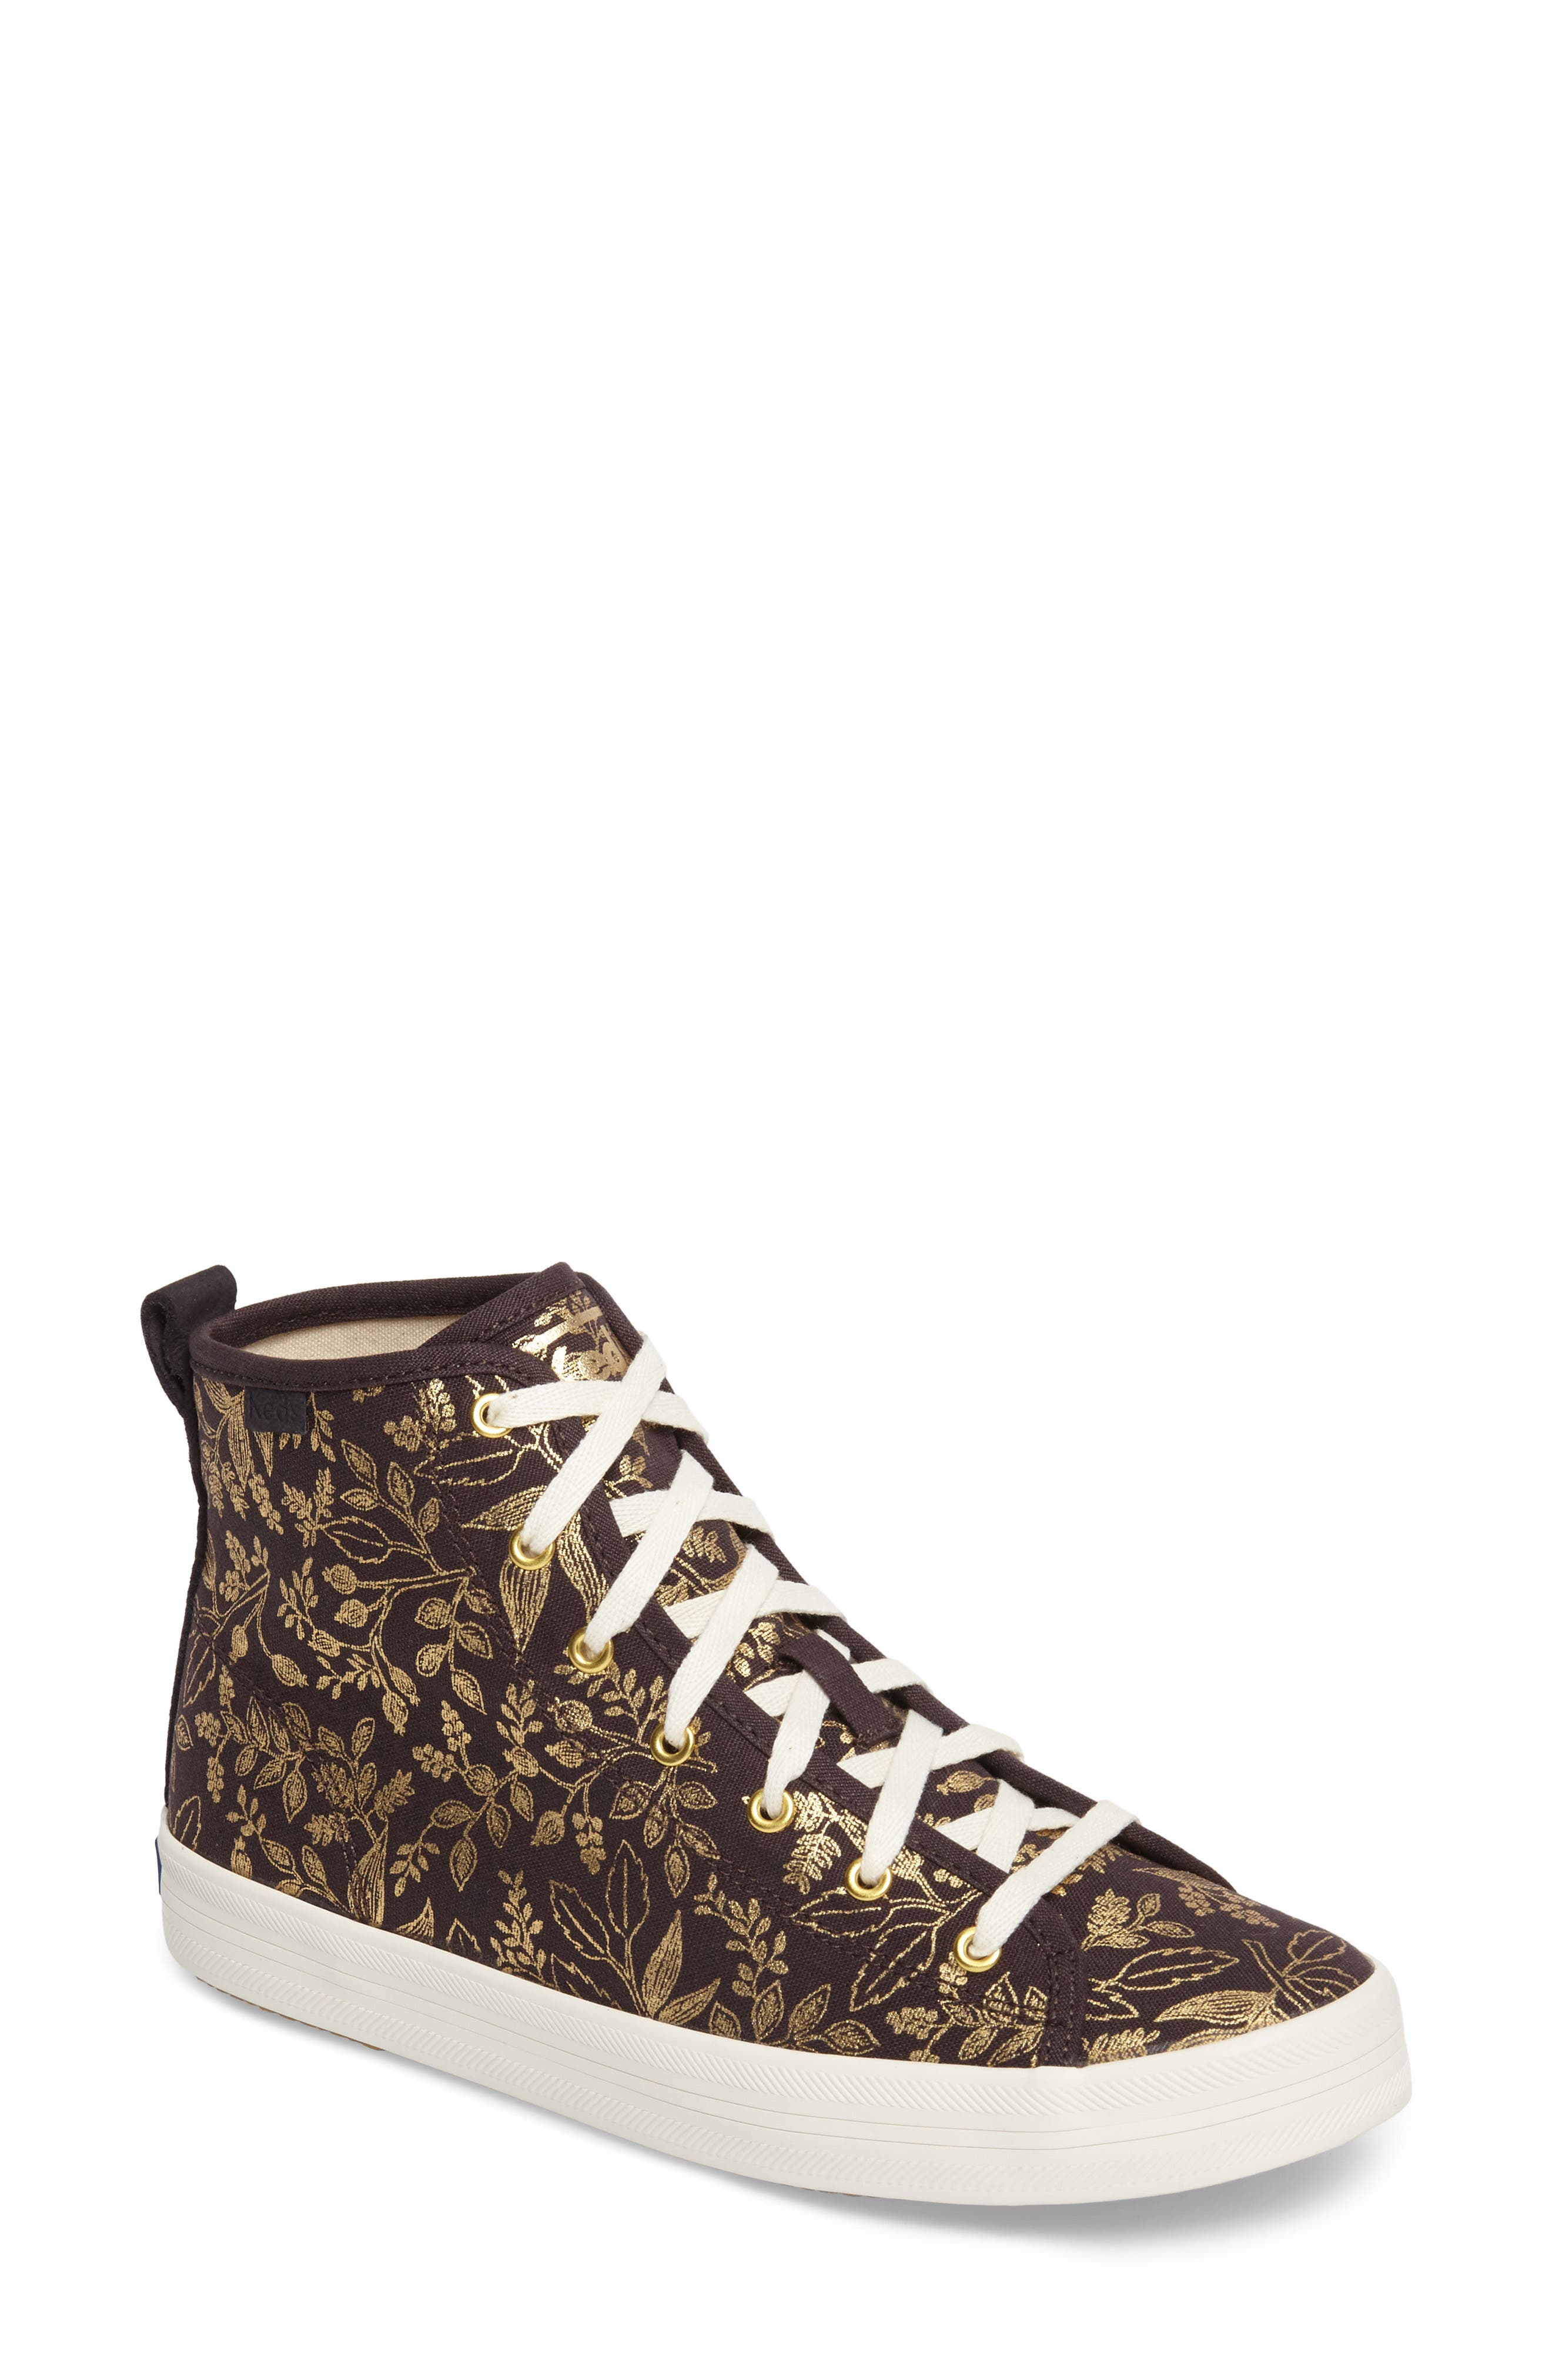 x Rifle Paper Co. Queen Anne High Top Sneaker,                         Main,                         color, 710